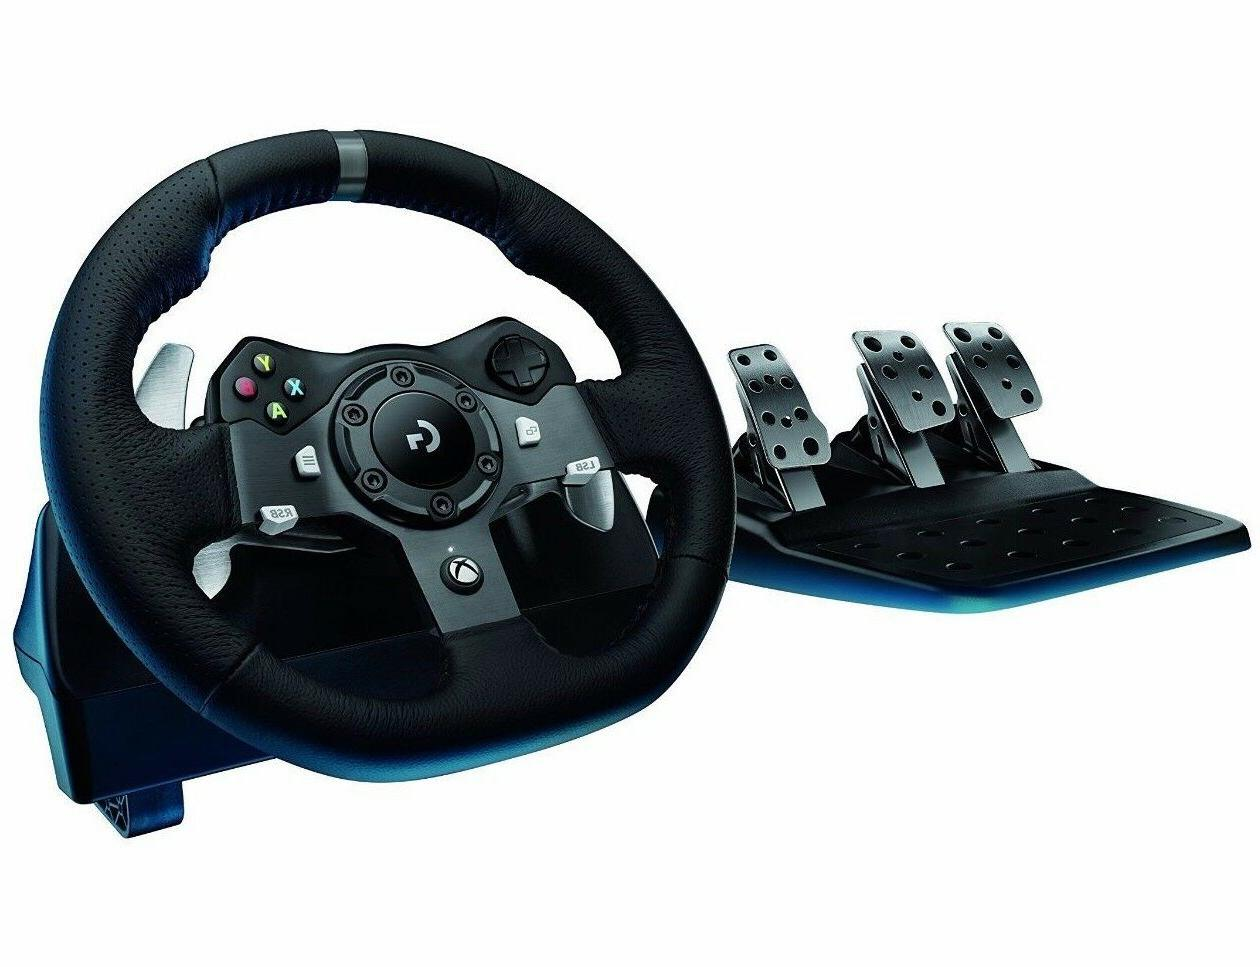 Logitech G920 Driving Force Racing Steering Wheel for for Xb